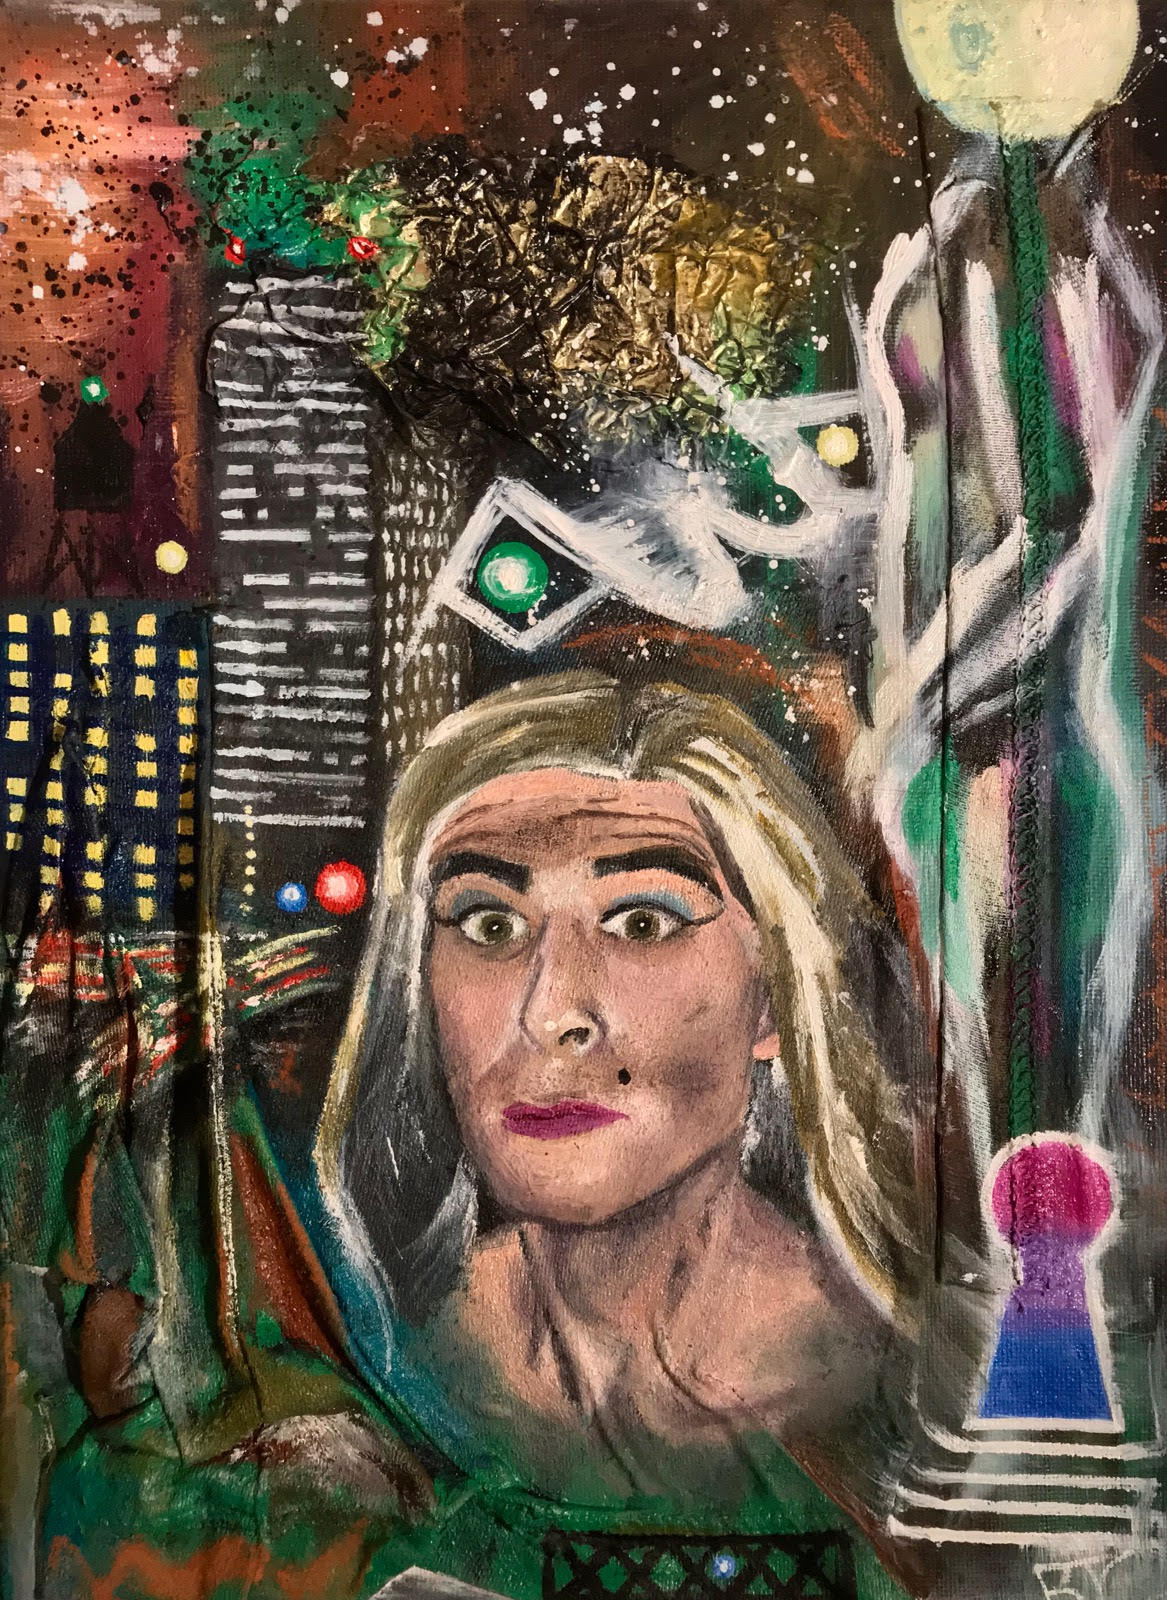 """Nightlife"" by Brennen Cabrera, Mixed Media; Oil, Acrylic, Soft Pastel, Wrapper, and Shirt Scraps on Canvas, 14x11in, 2018, $175"